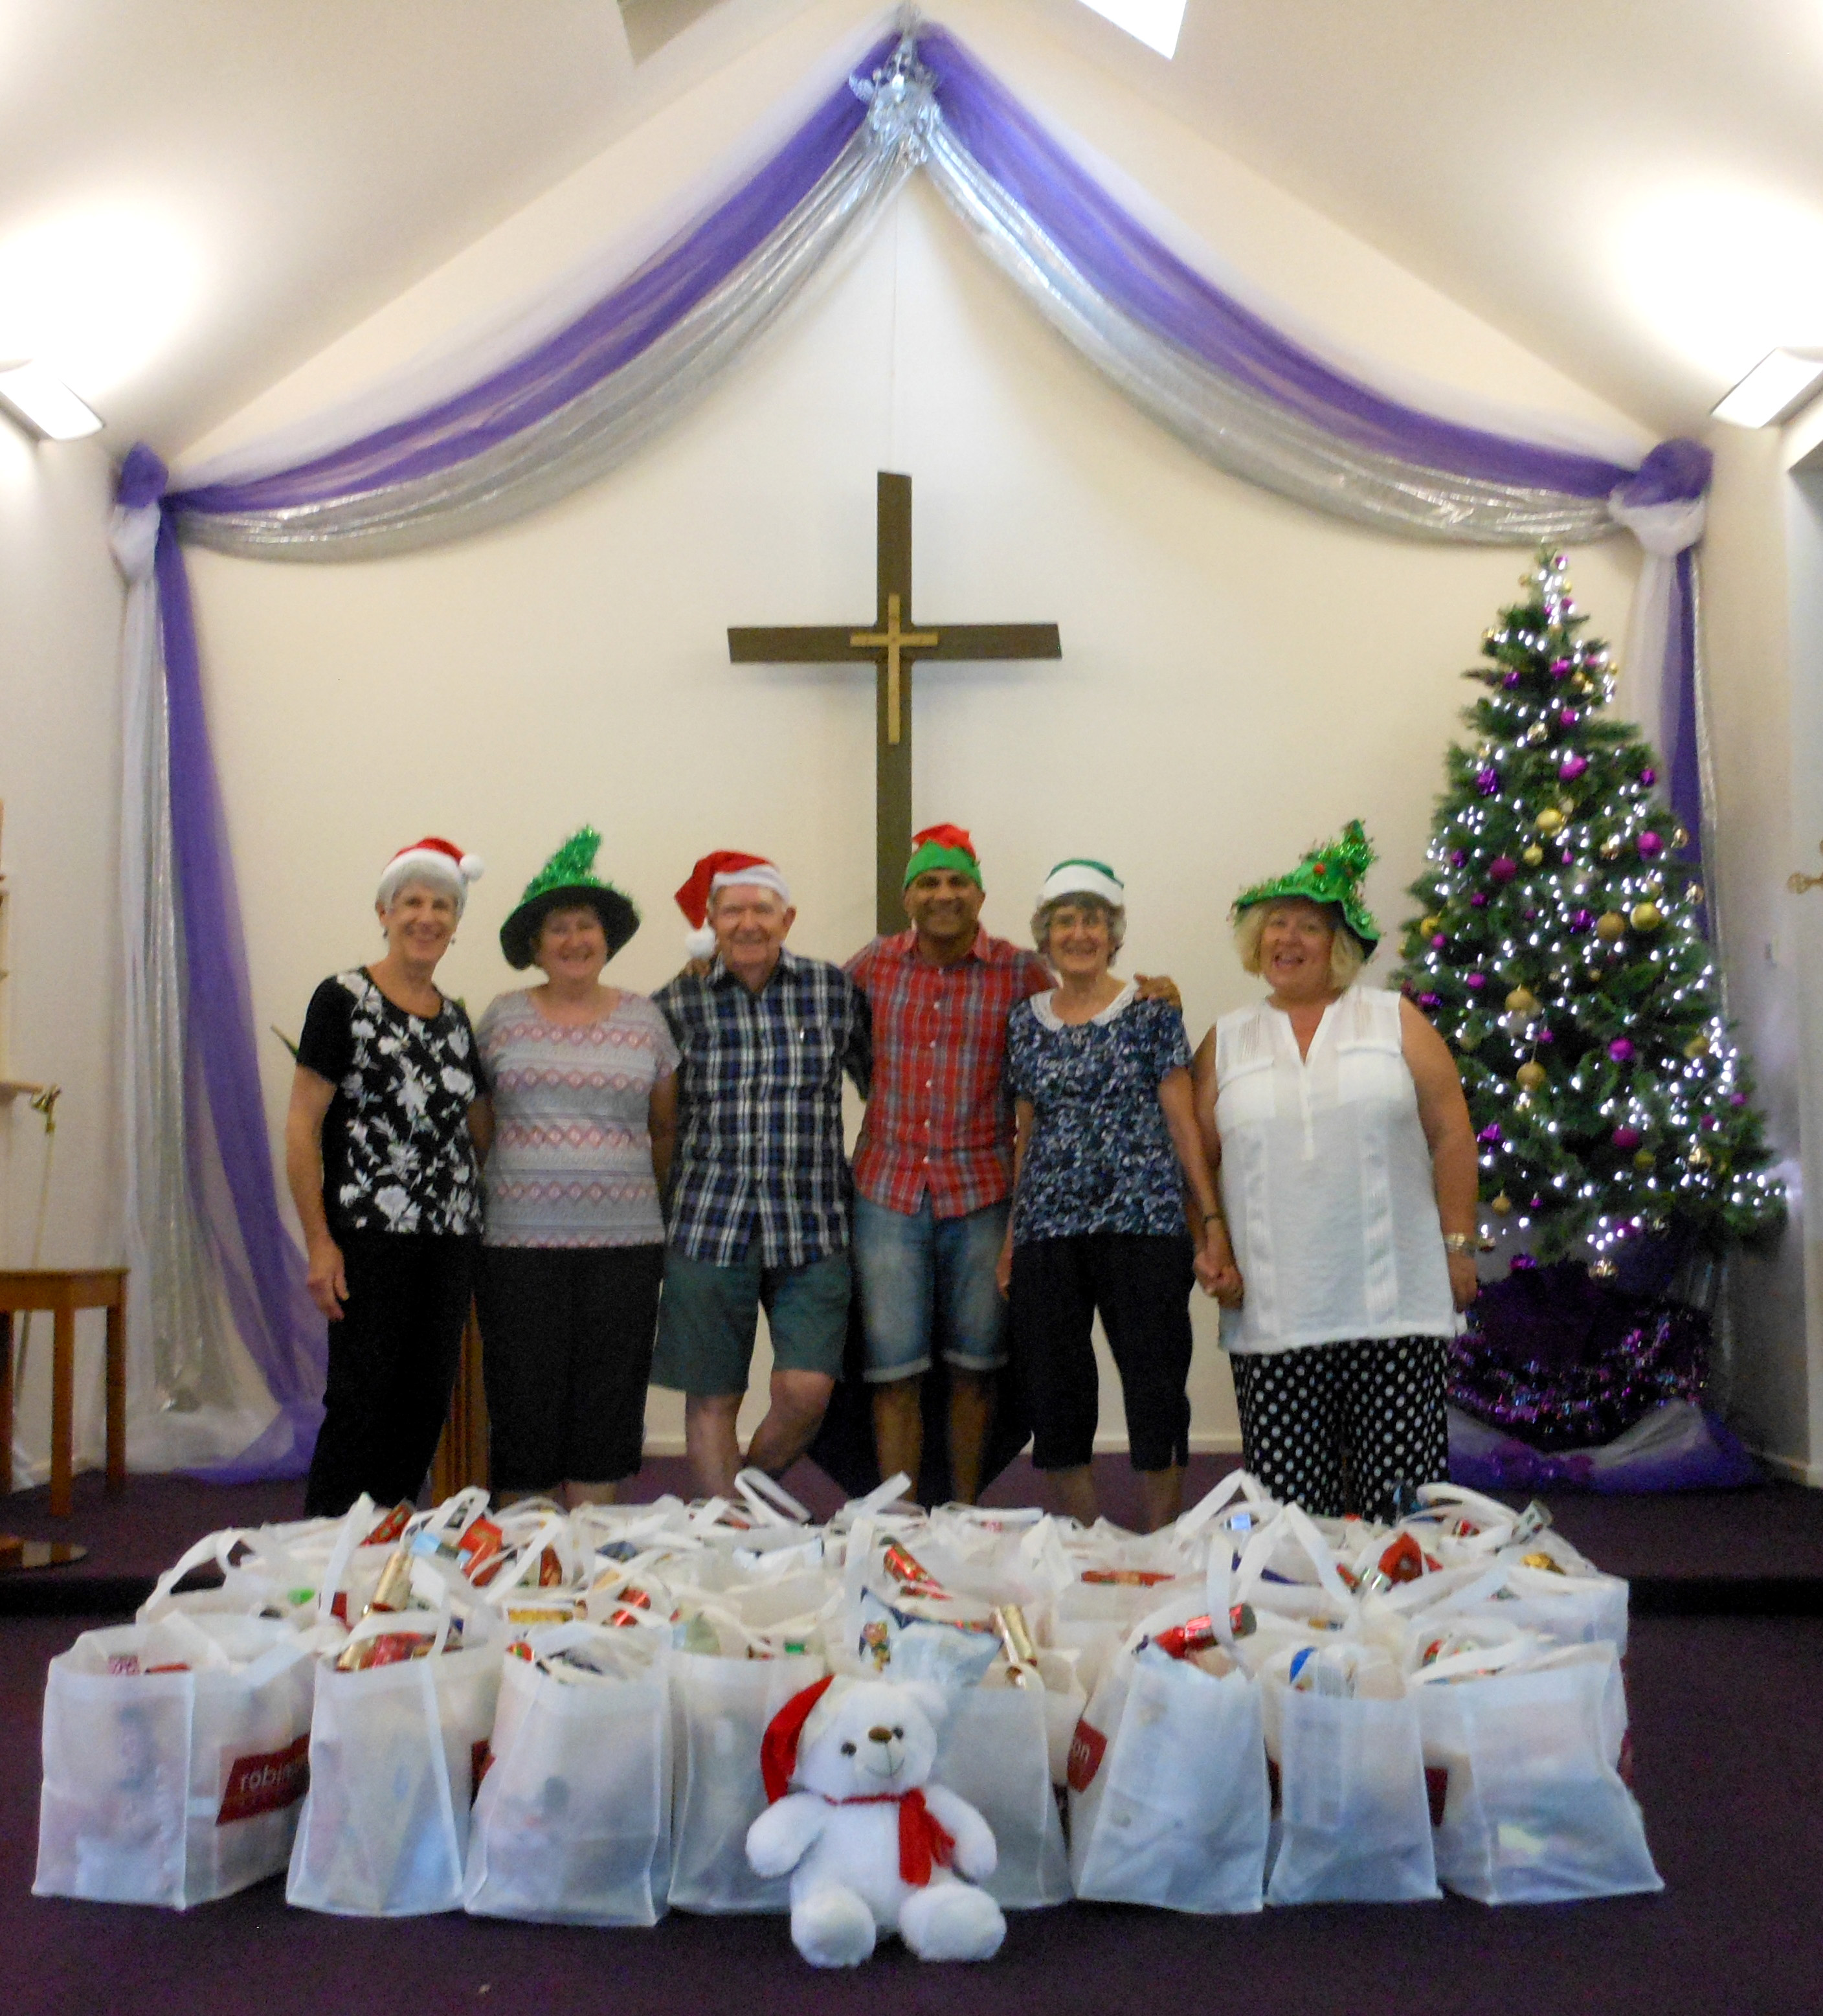 Hampers all ready to give to 100 needy families in the  area,  Rev Kesh Govan and Parishioners of All Saints.  Photo by Kesh Govan